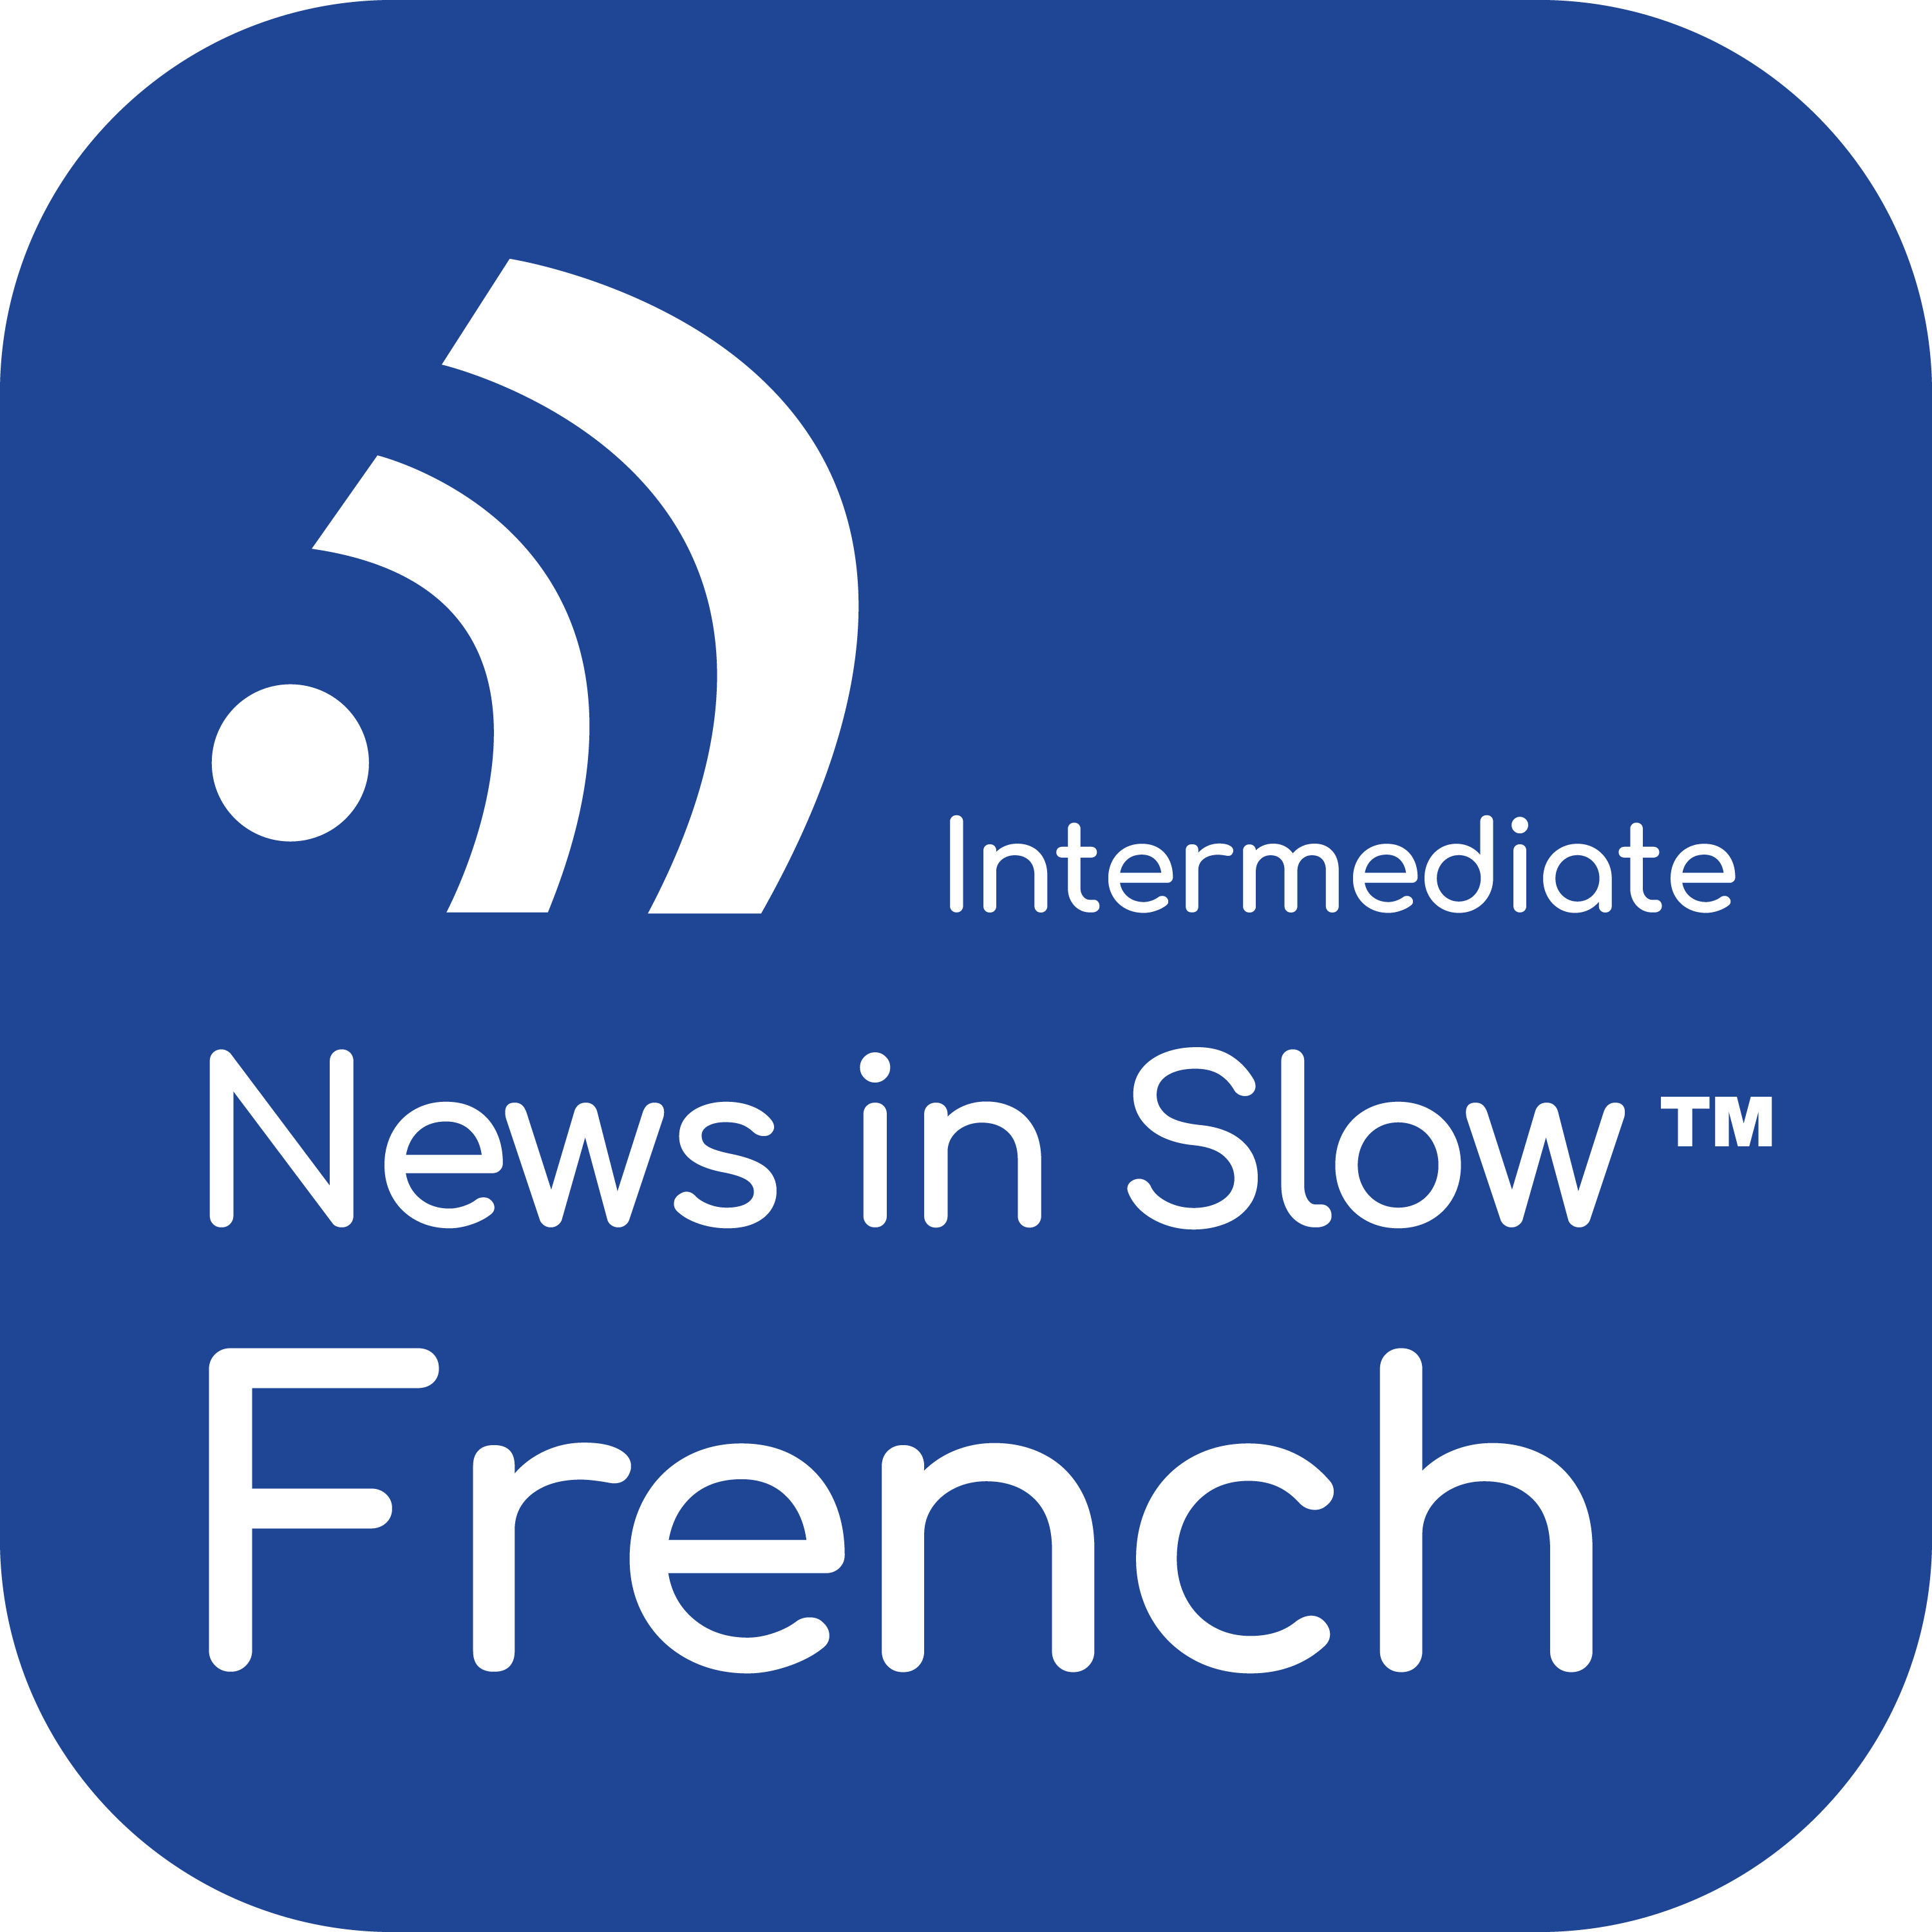 News in Slow French #494 - Best French Program for Intermediate Learners